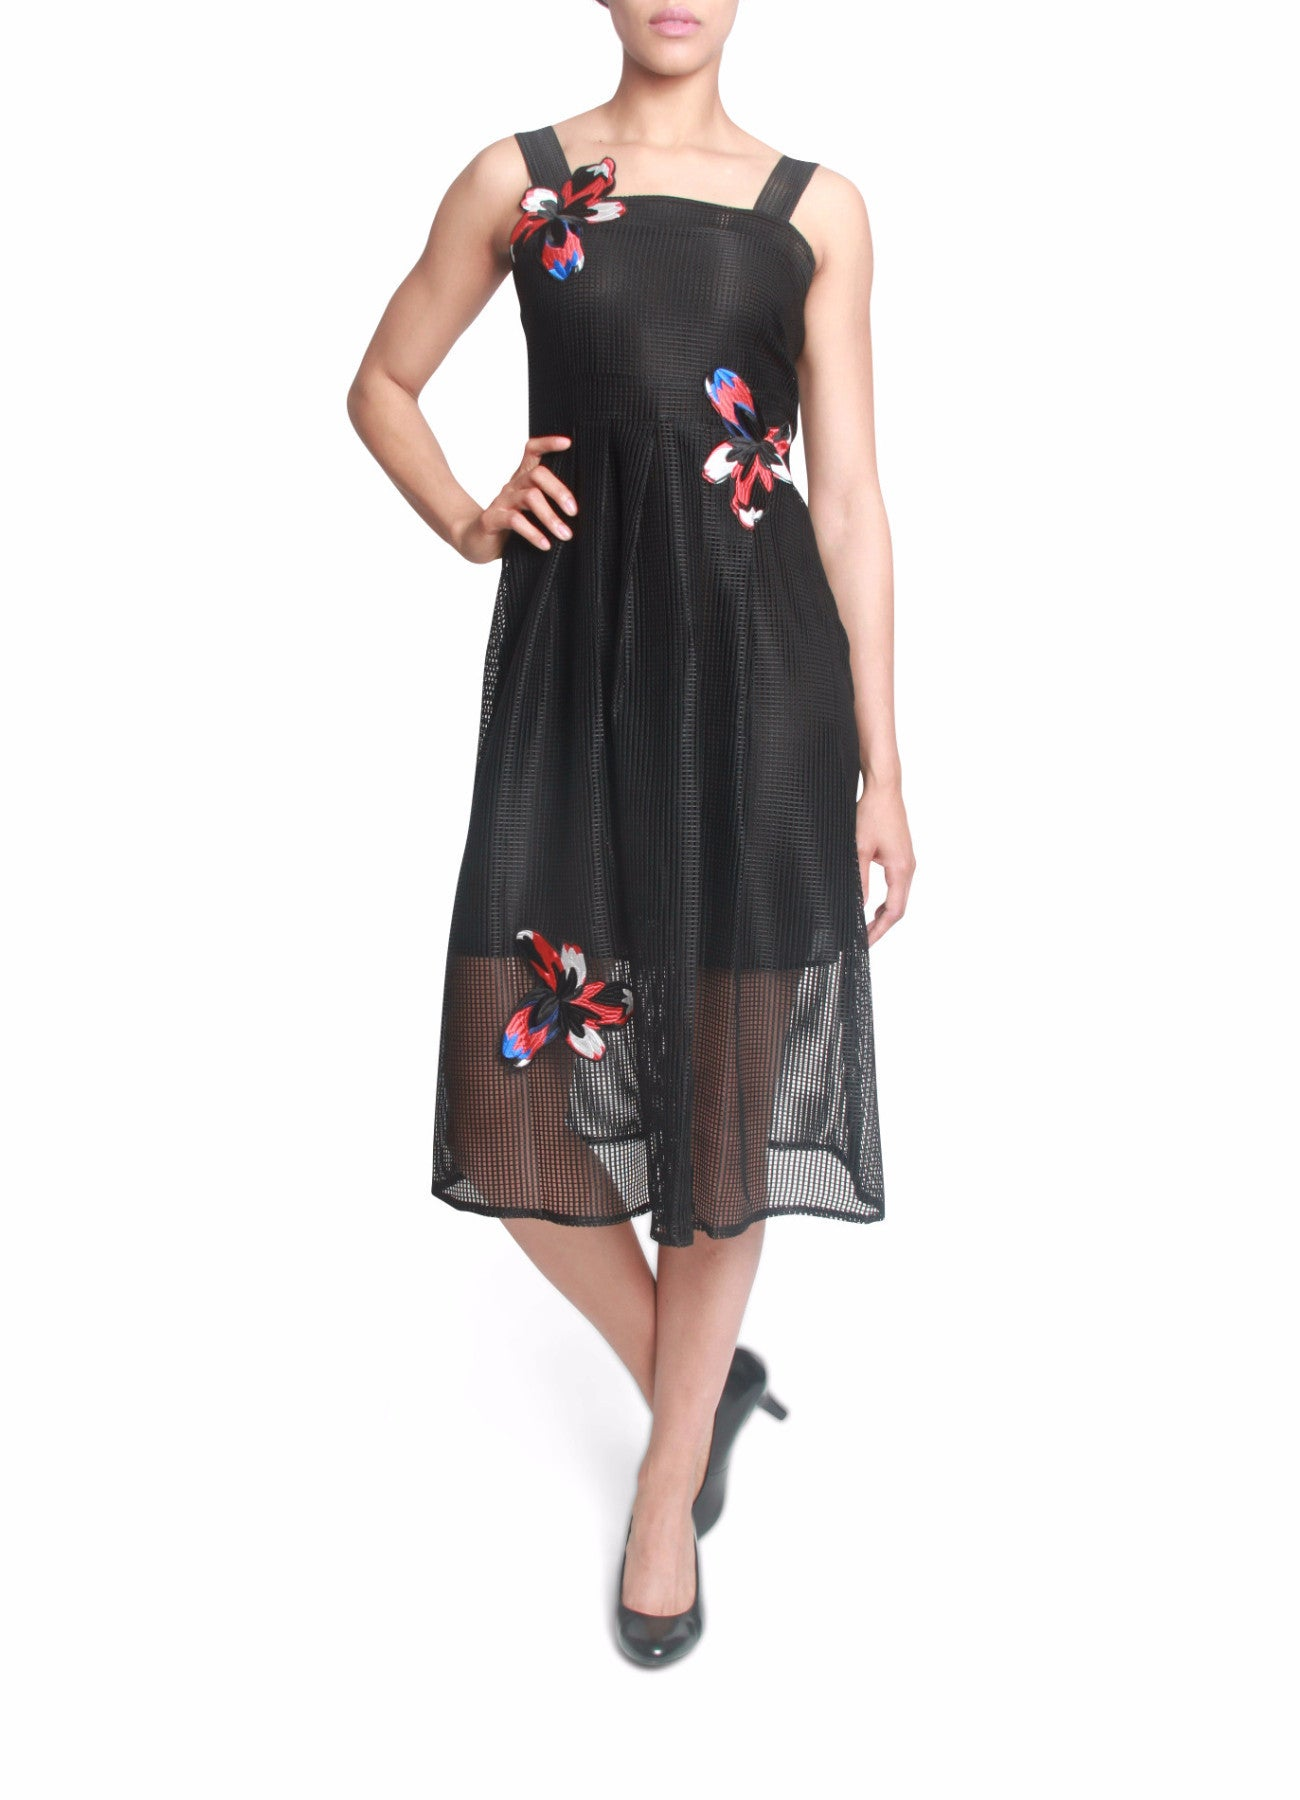 Mesh dress with flower applique